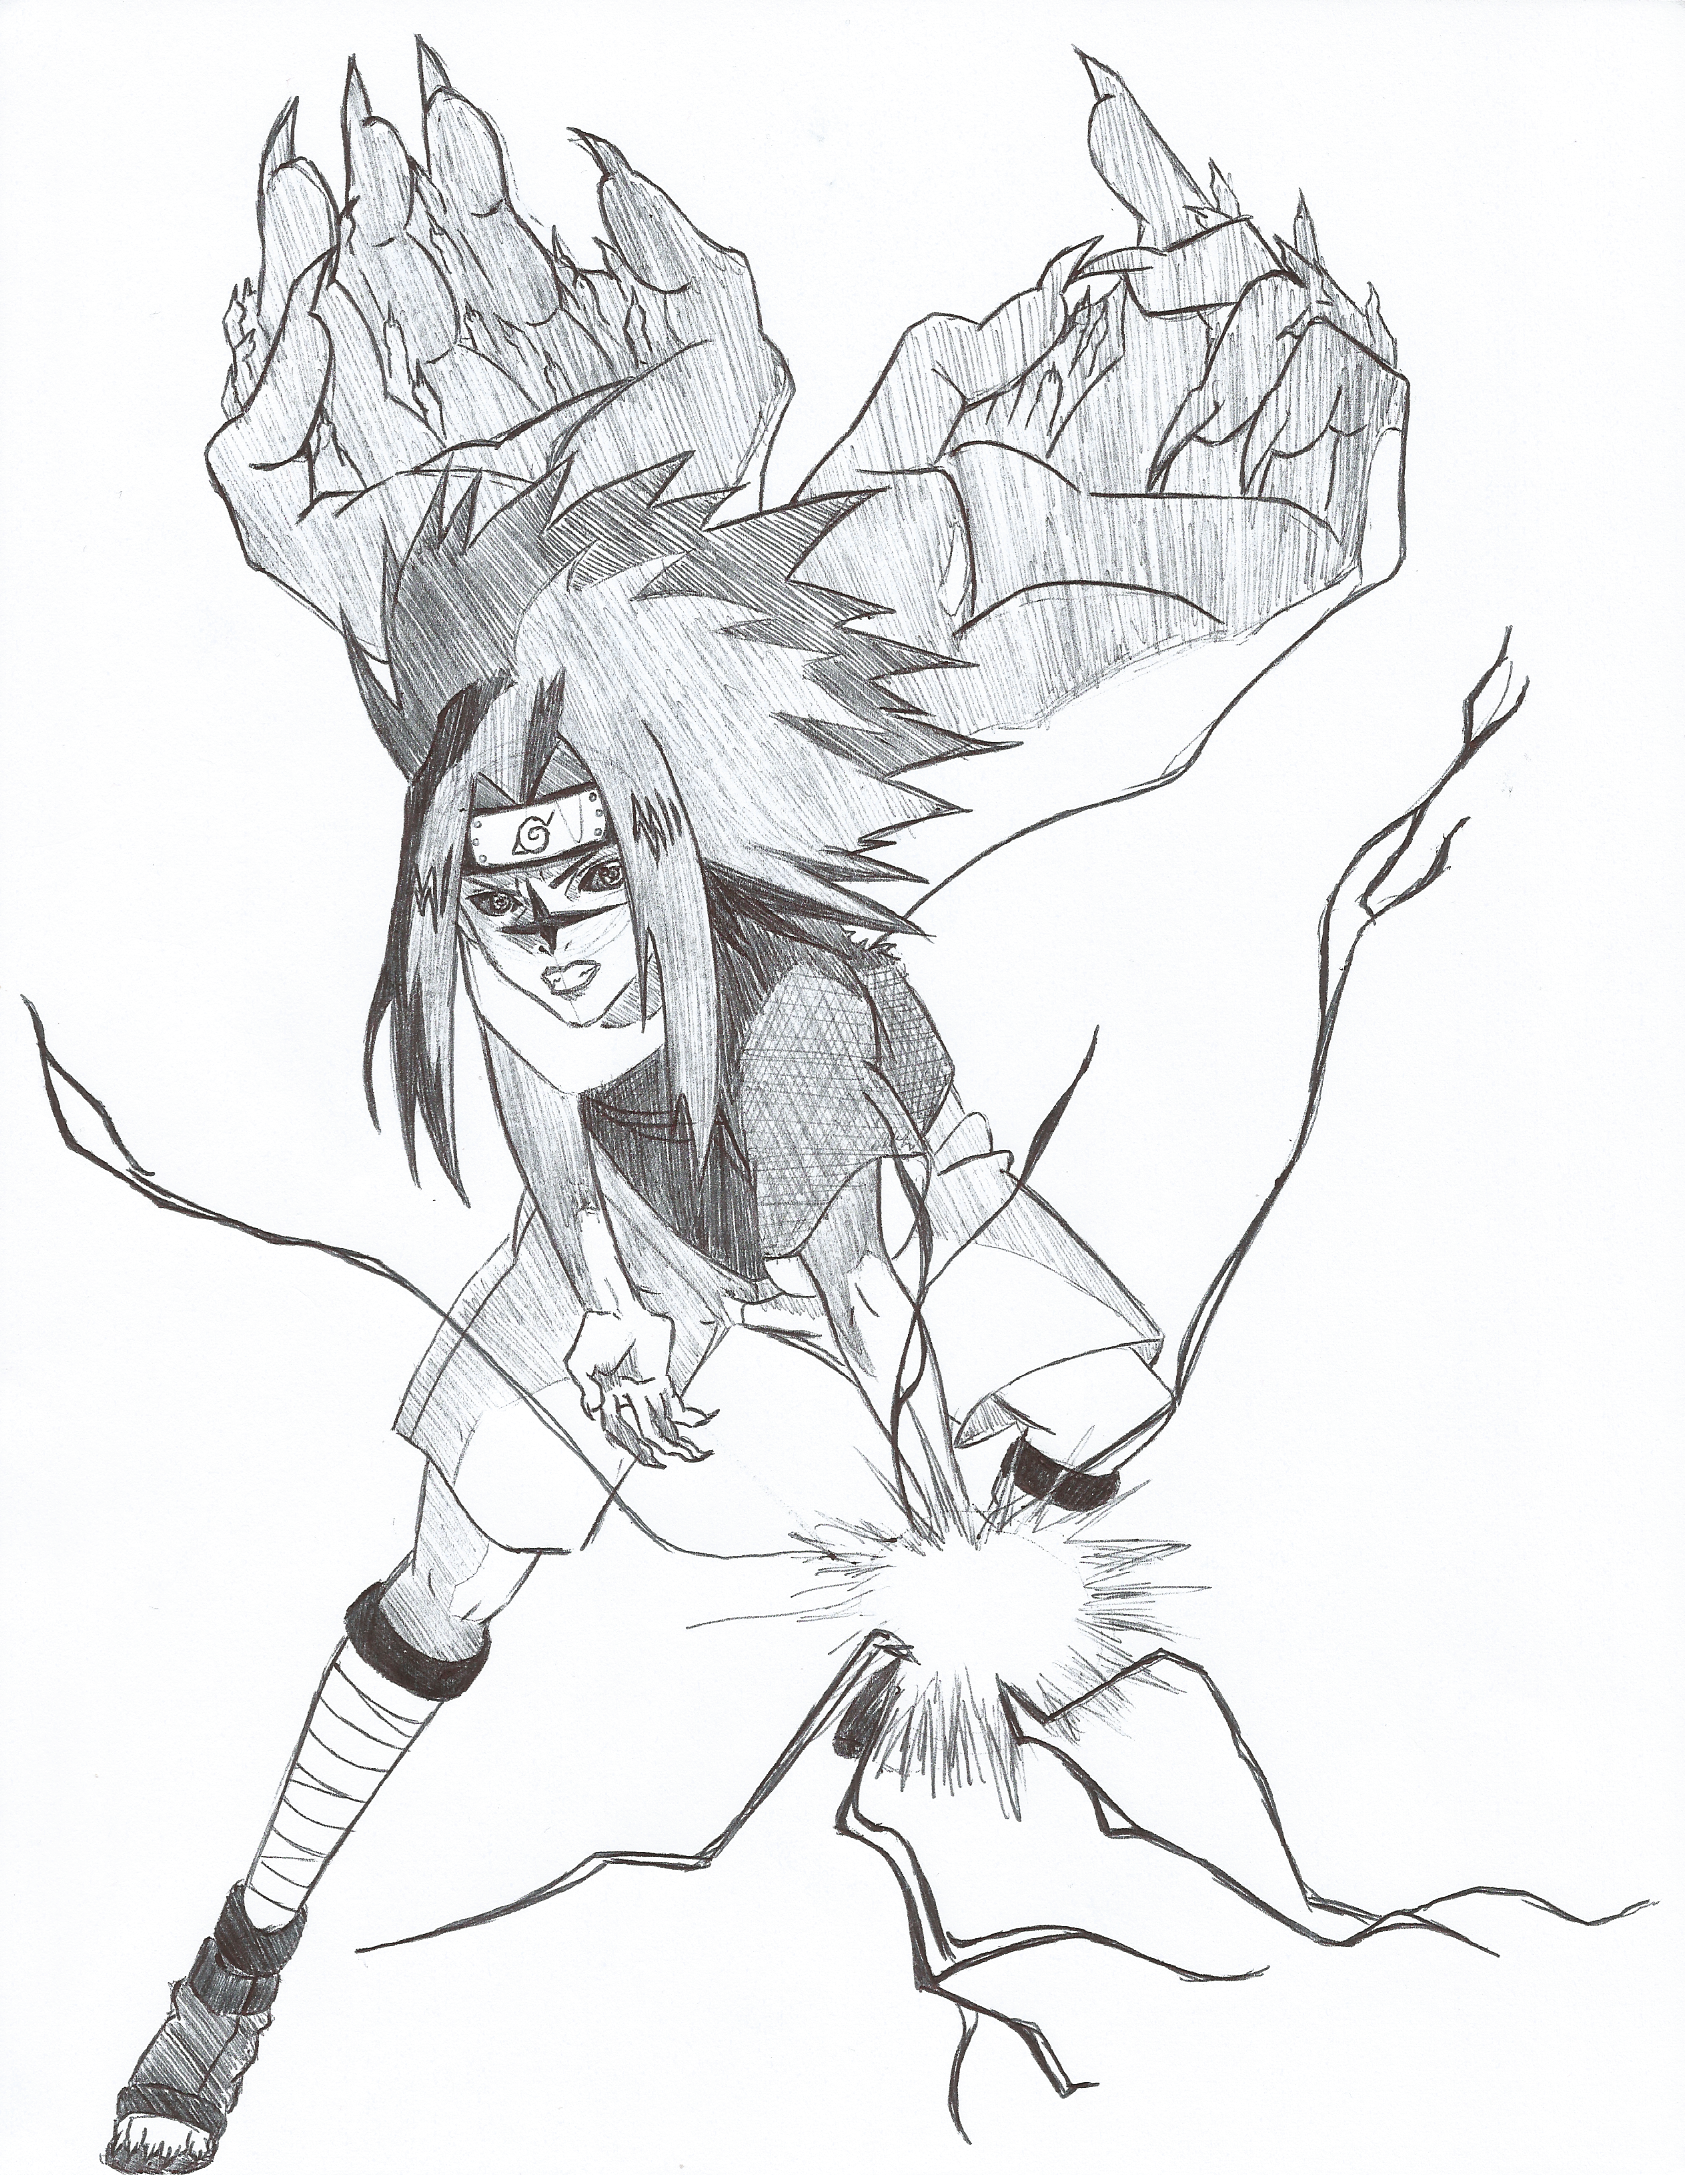 MADARA UCHIHA THE POWER IN A NAME 388387341 in addition Itachi Para Colorir CA6GA65AX as well 122019471132118303 together with 2 additionally Esdeath Lineart 468263840. on itachi susanoo coloring pages